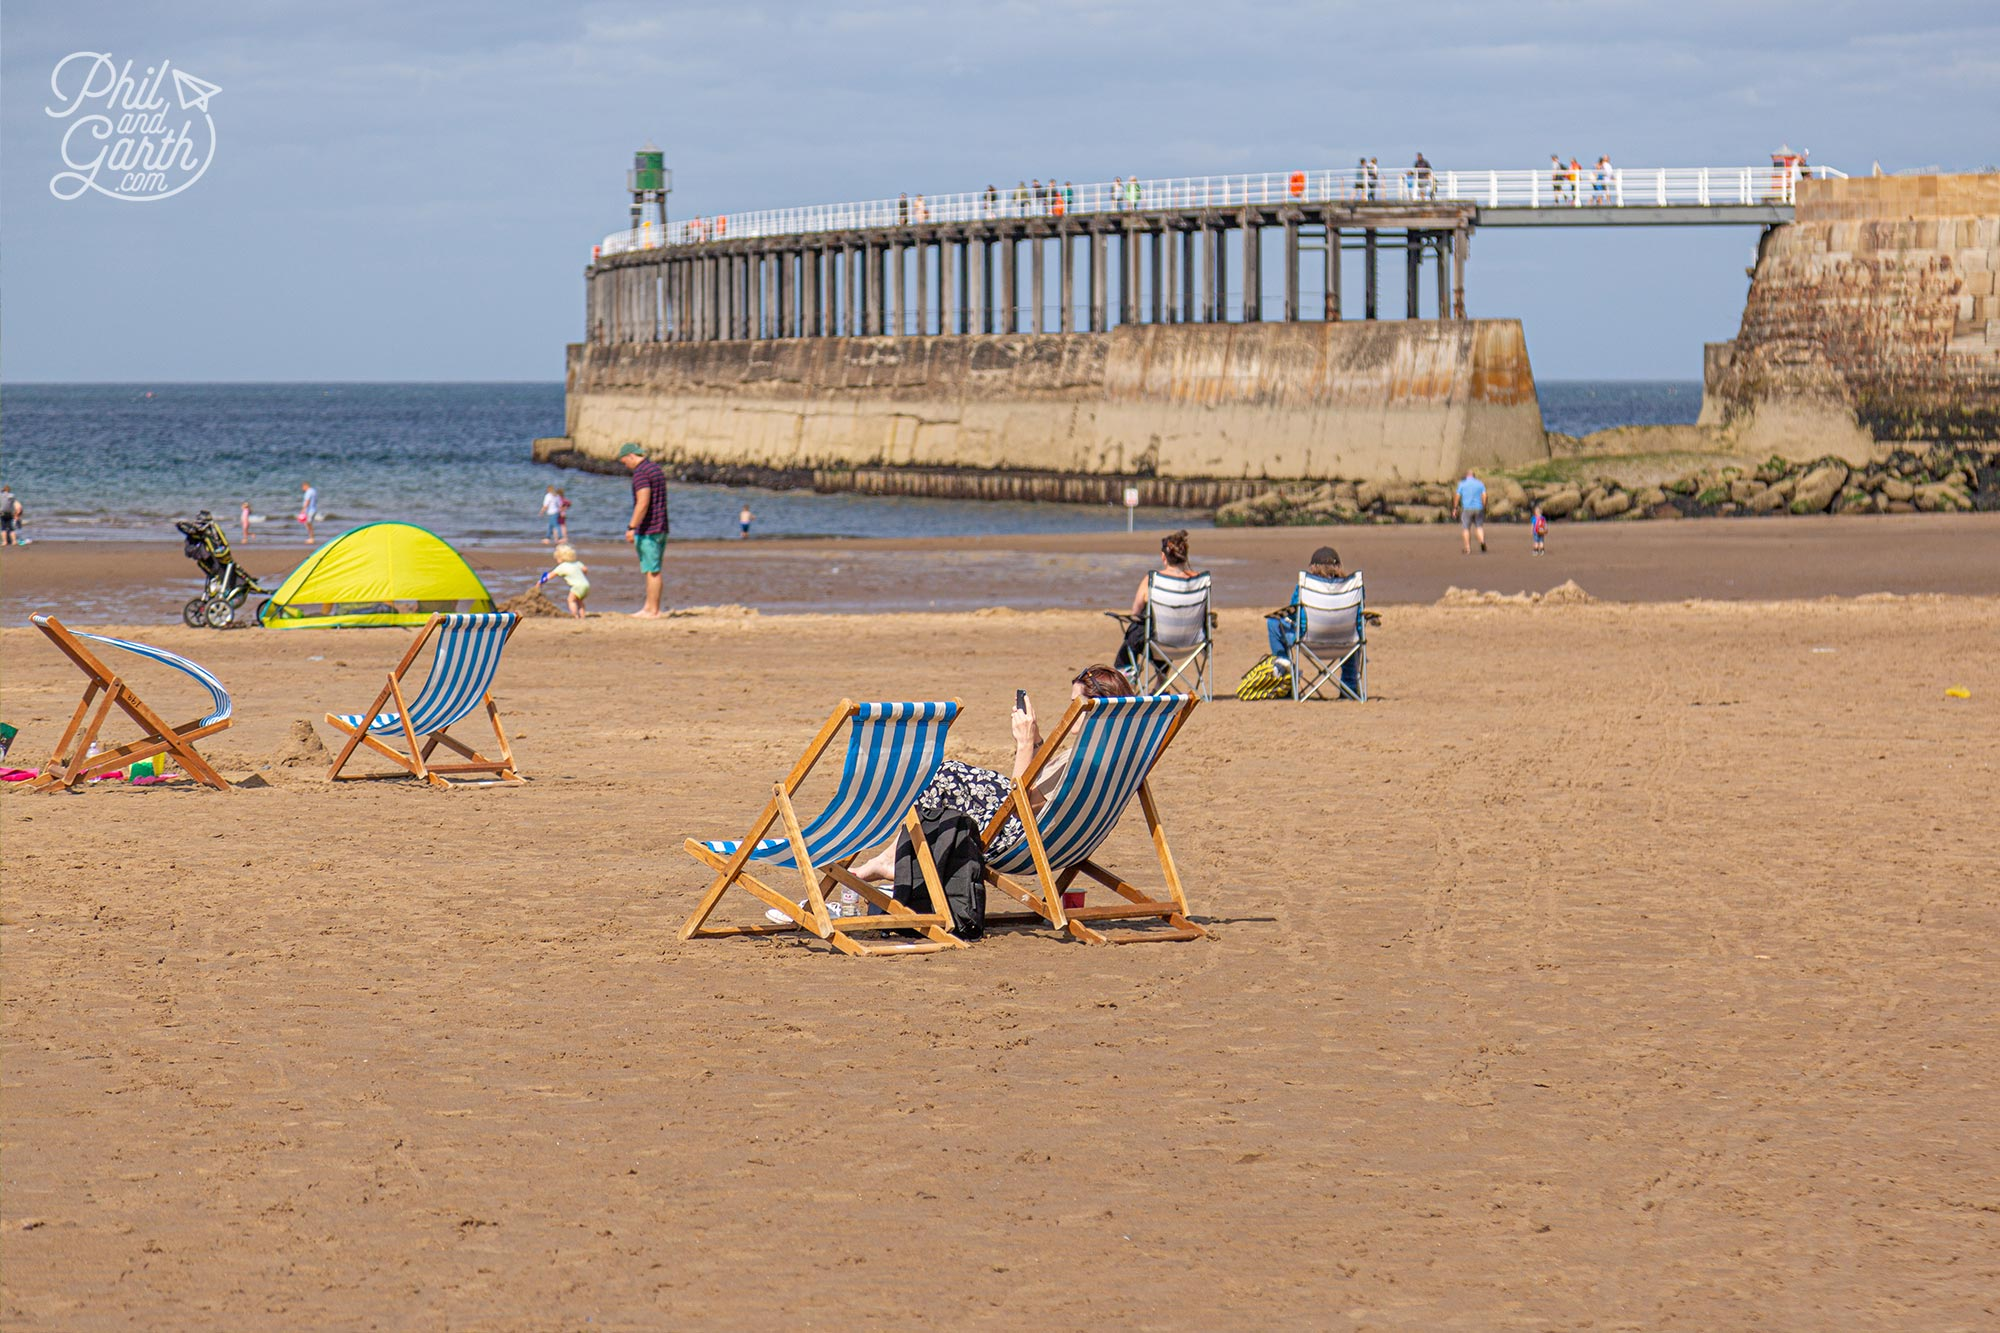 Deckchairs are available for hire on Whitby Beach